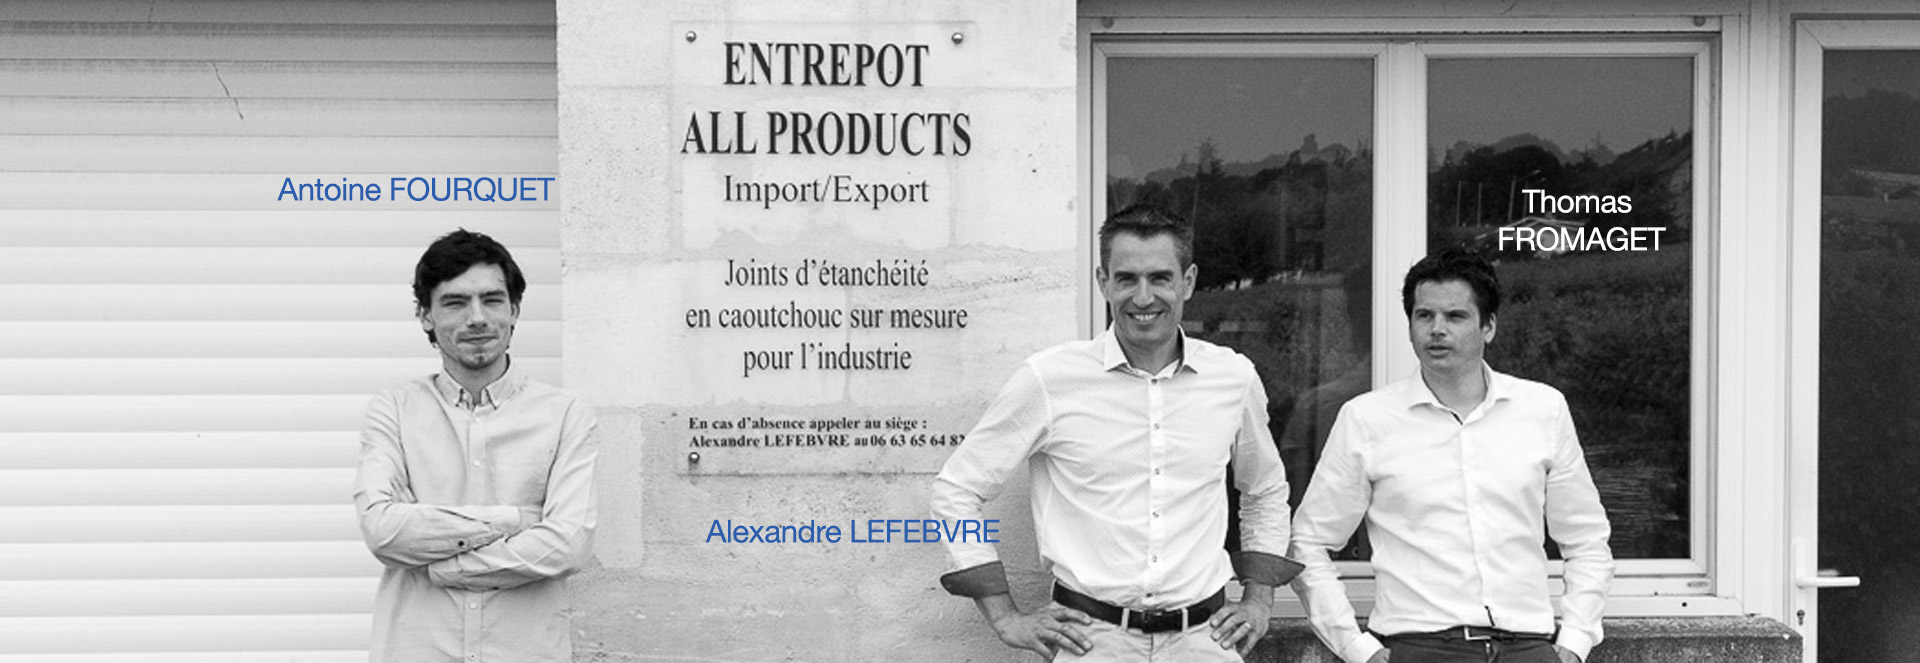 allproducts-contact-allproducts